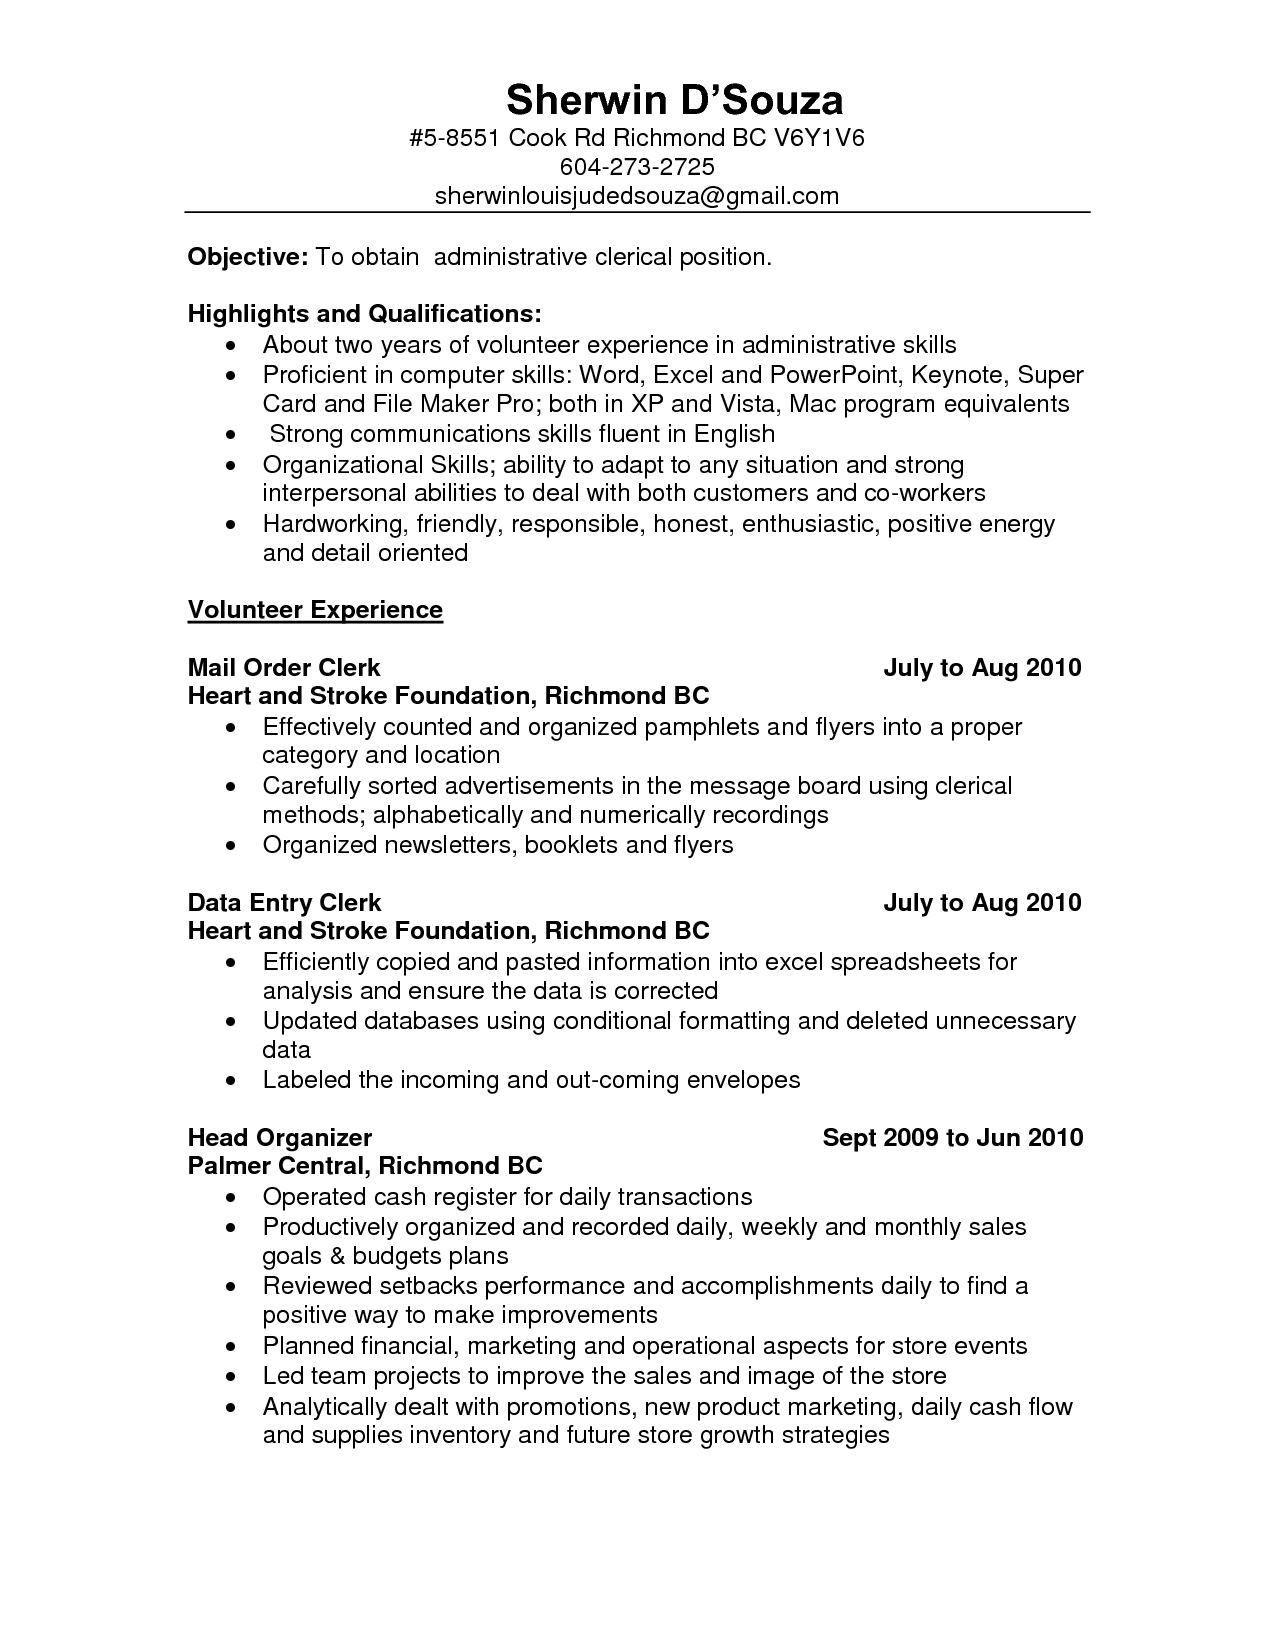 insurance clerk resume sample samplebusinessresume com law clerk resume sample highlights and qualifications insurance